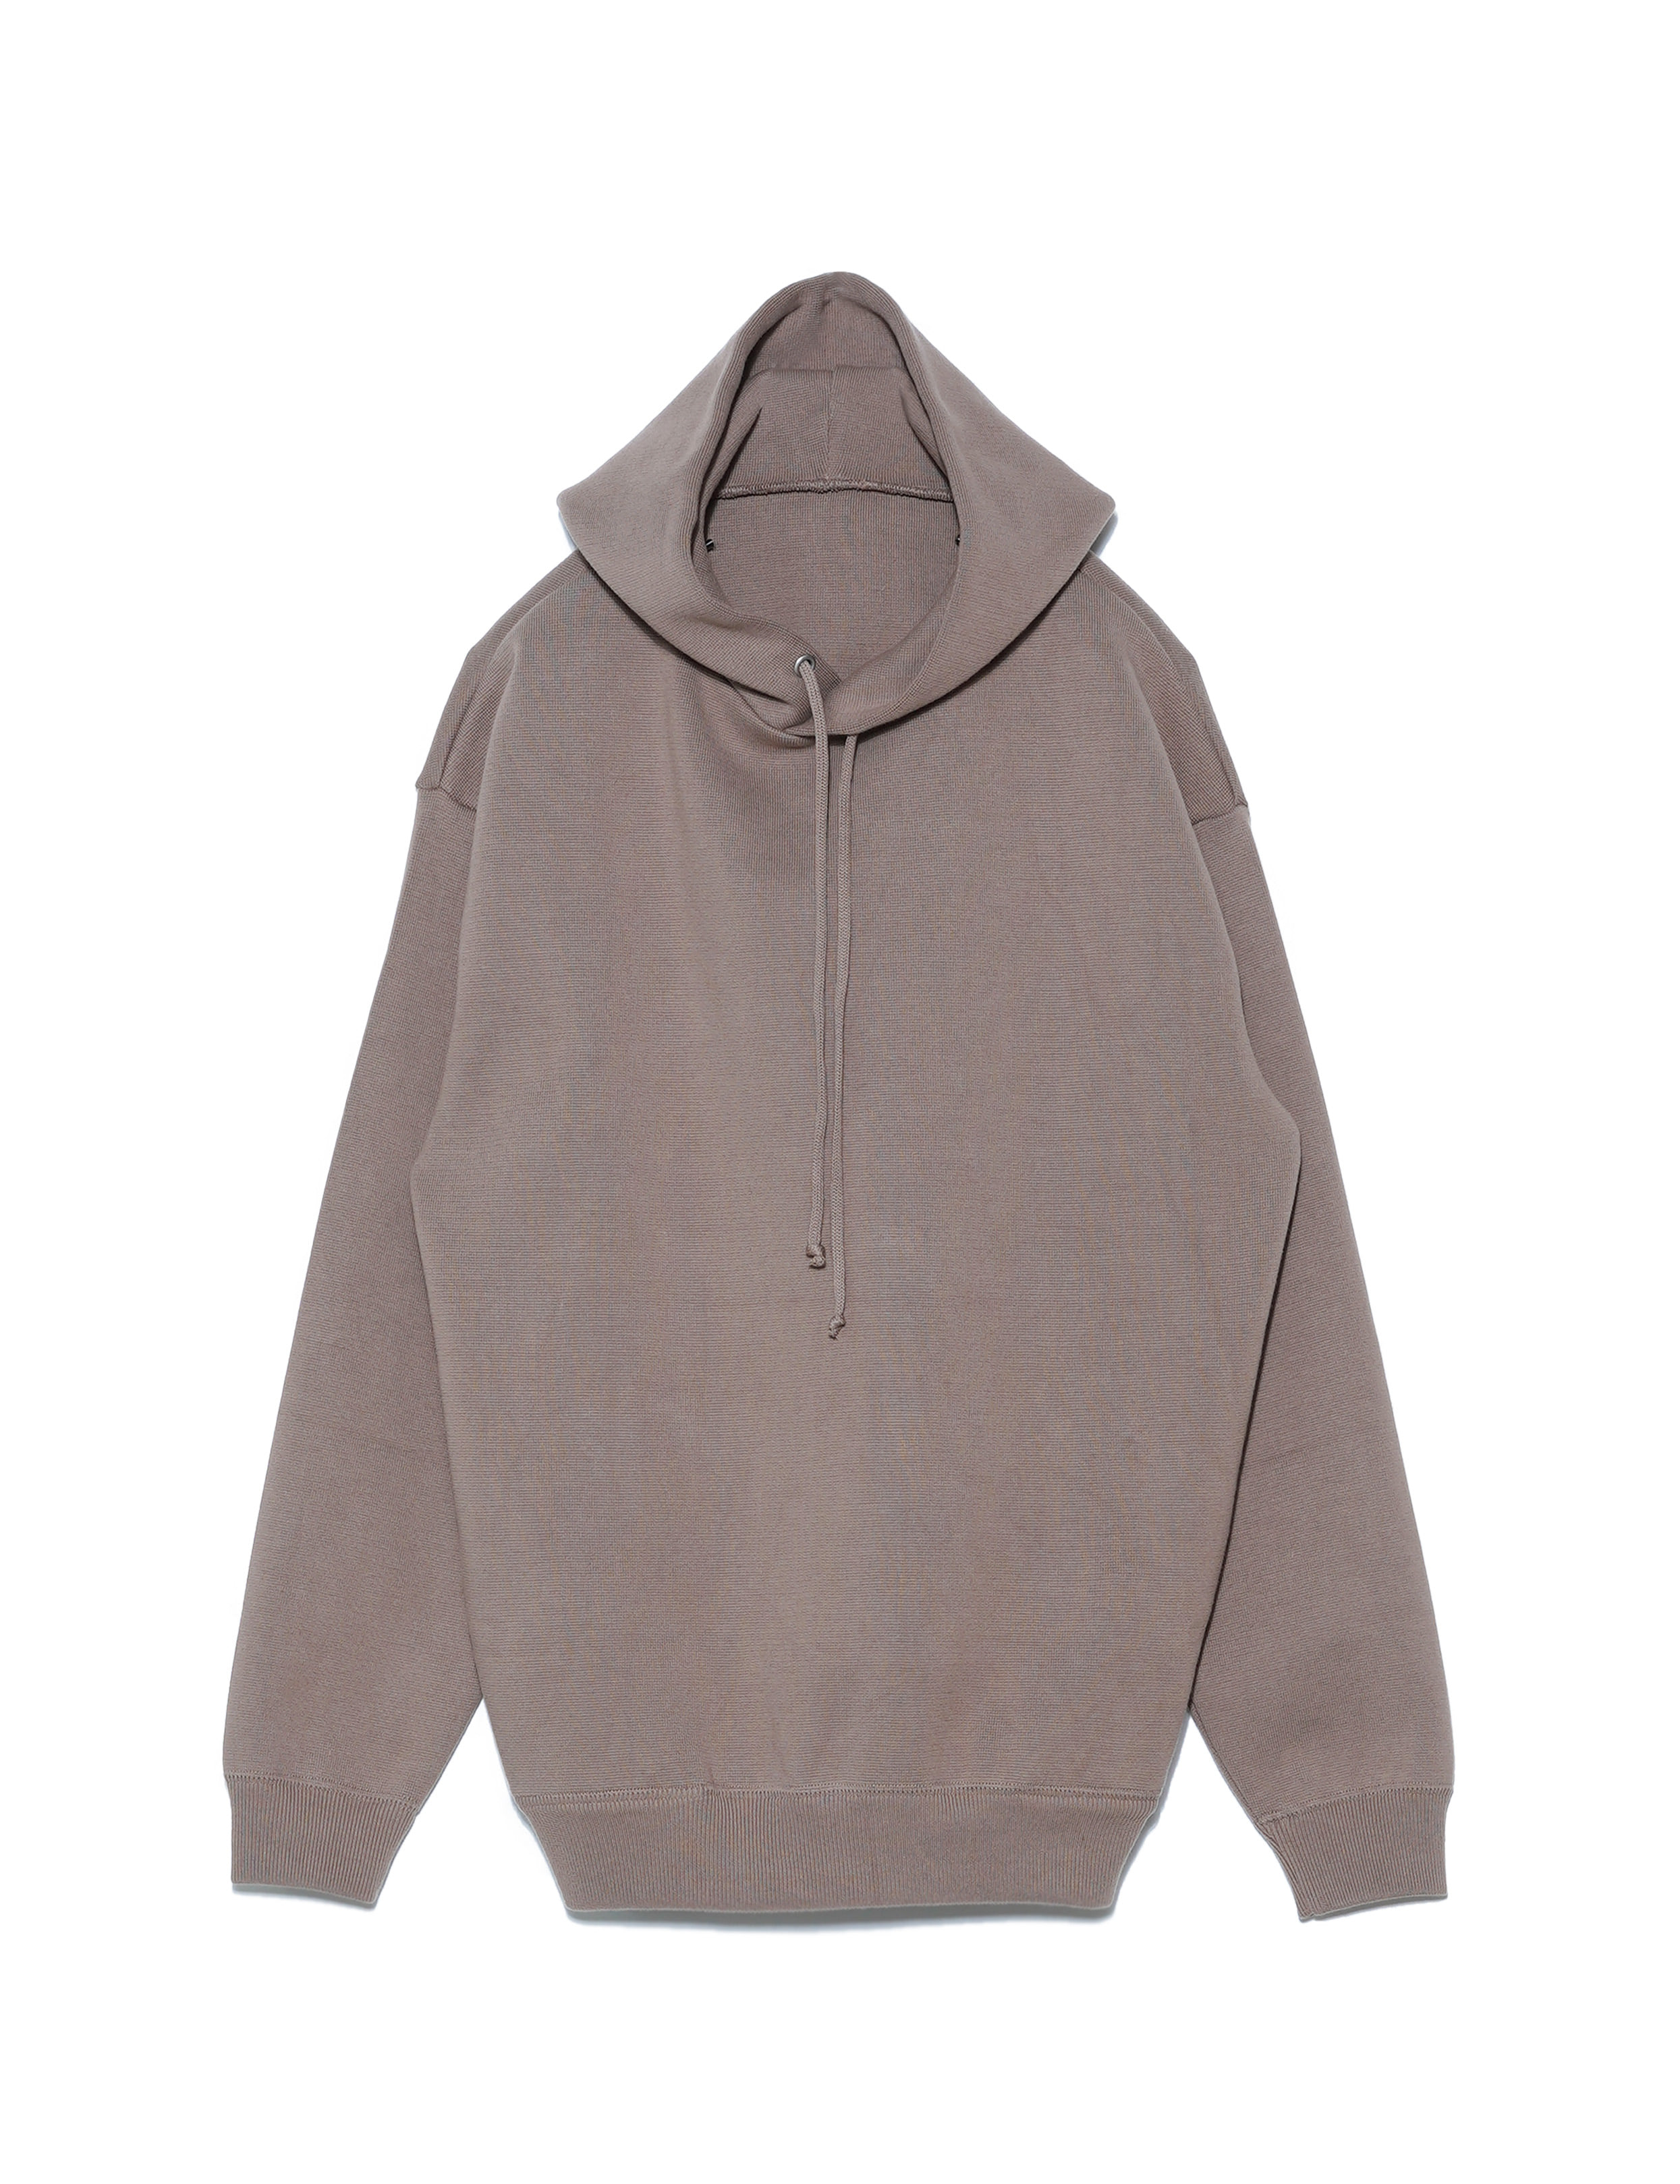 MILANO RIB PARKA (BROWN)